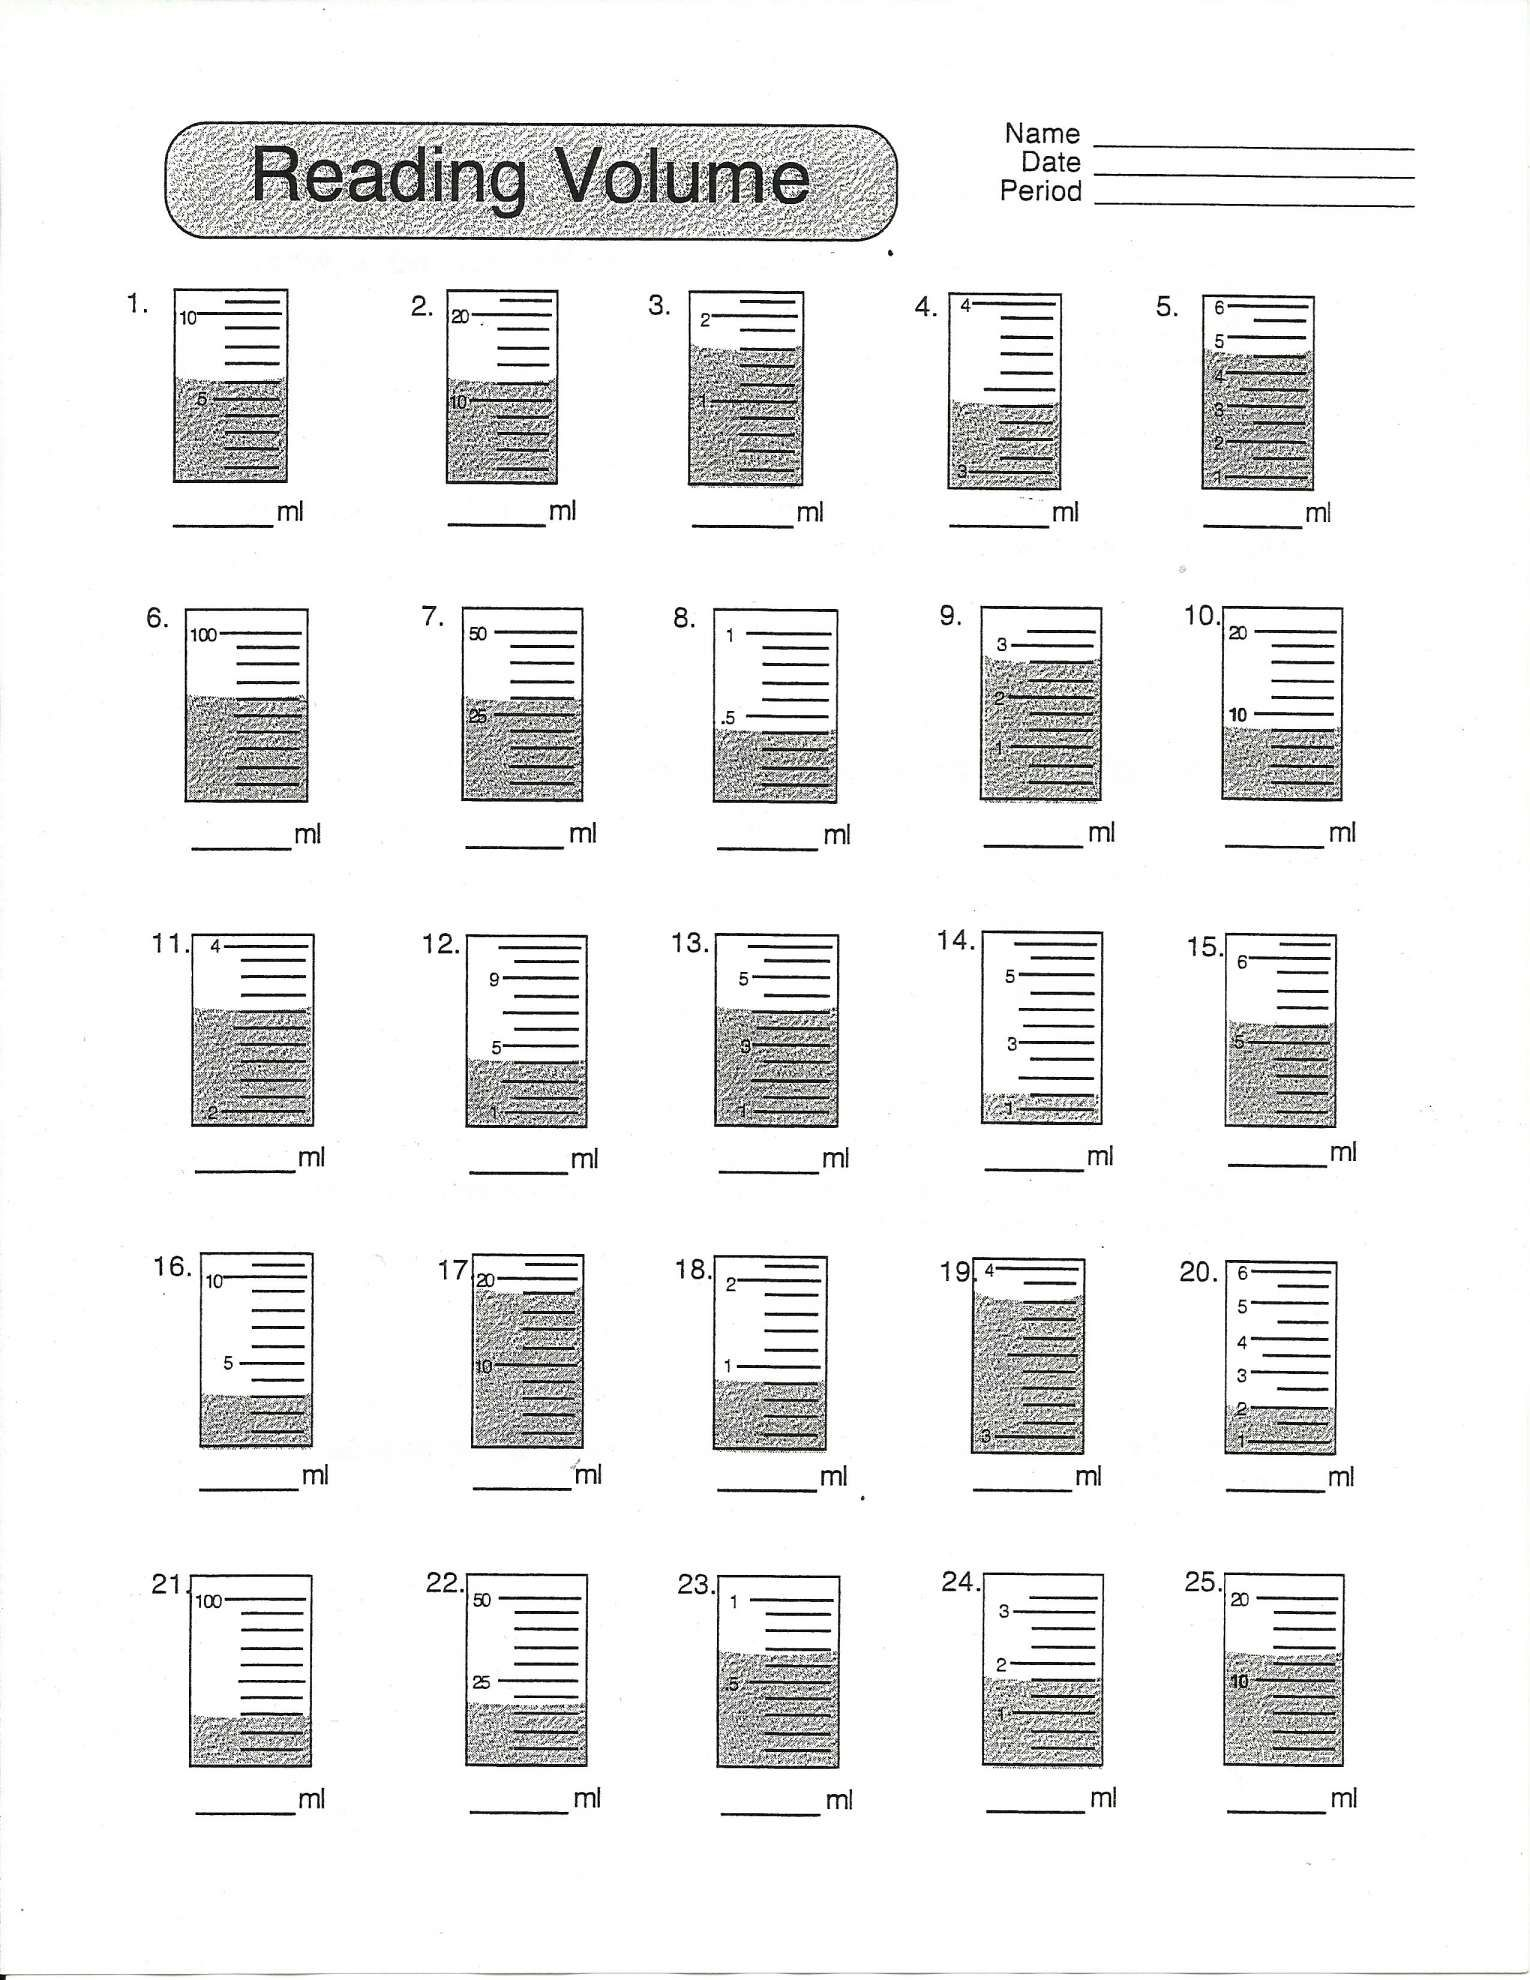 8 Reading Volume Worksheet Answers